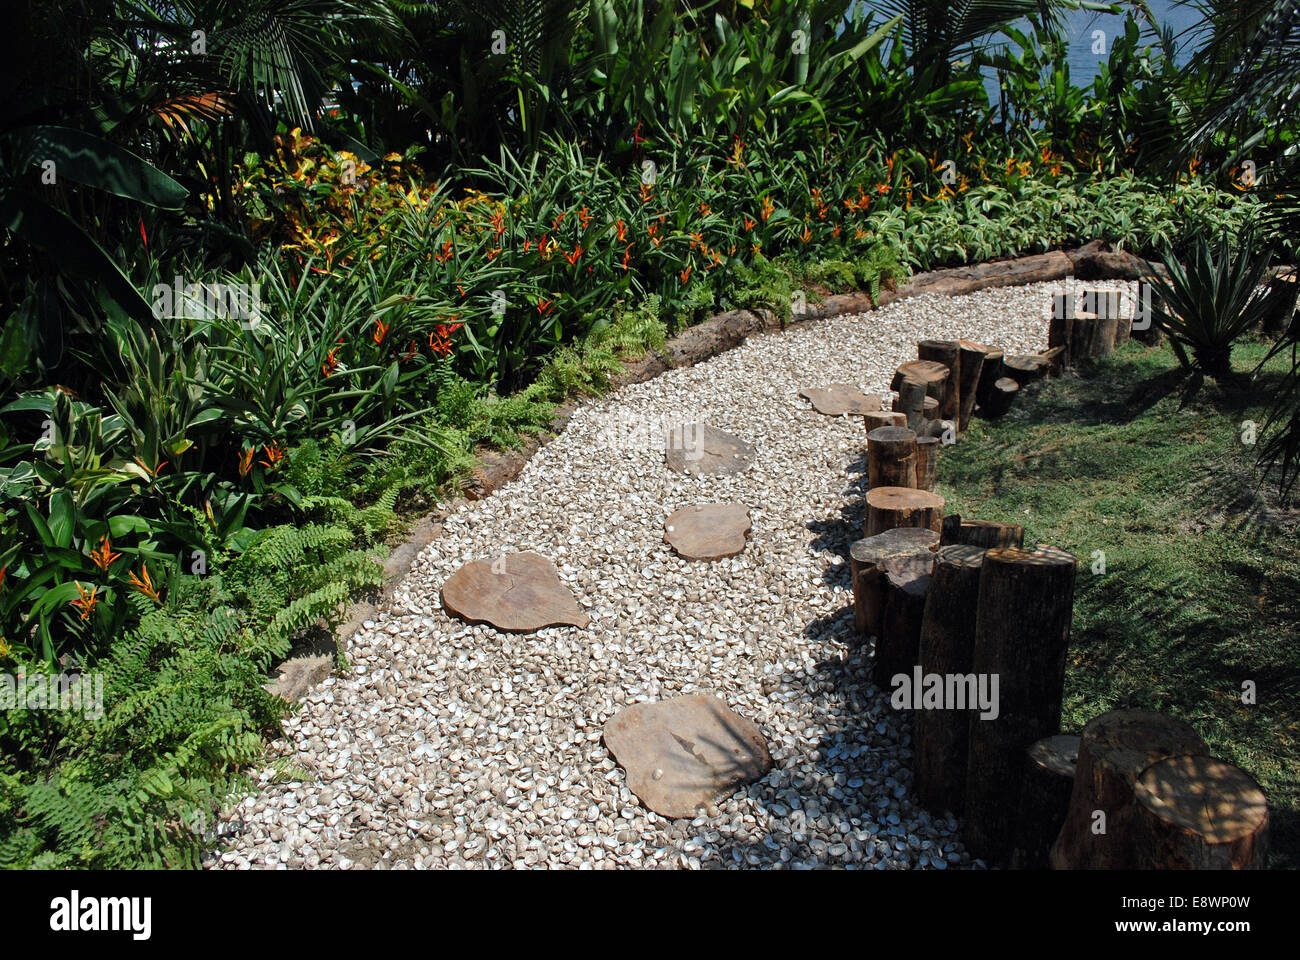 Landscaped Garden With Cockle Shells And Wood Blocks Foot Path